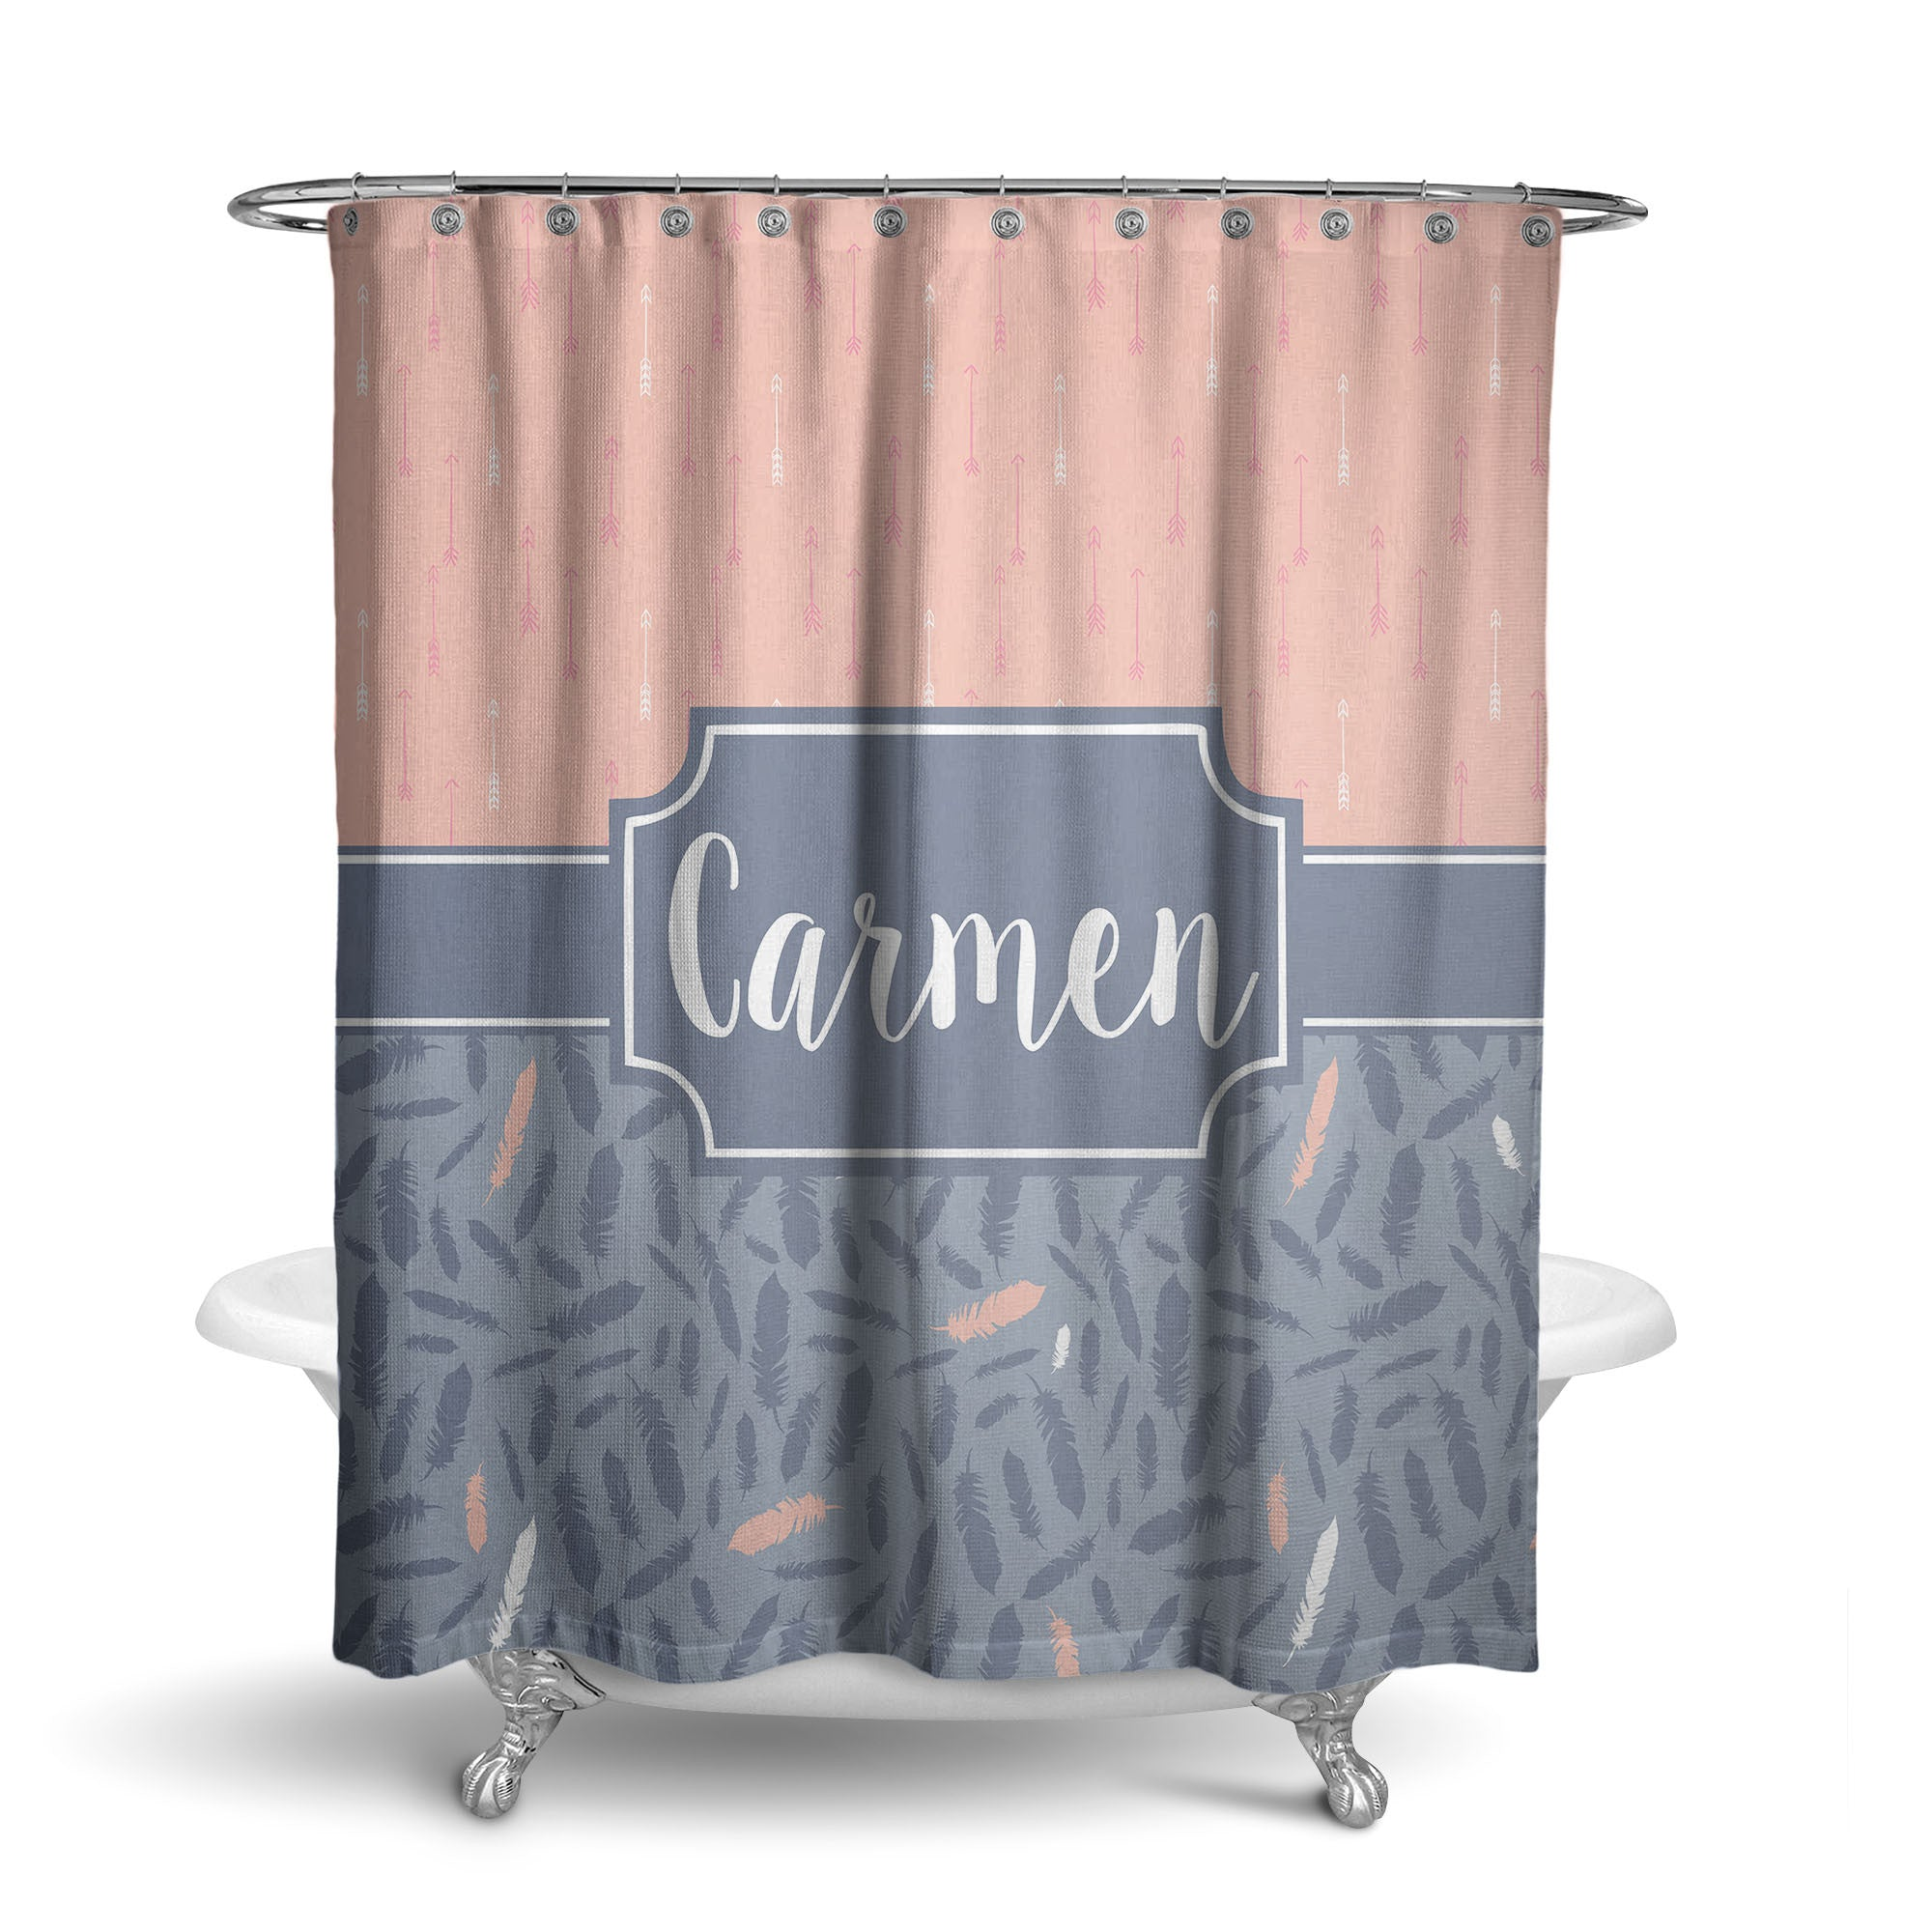 bedding set curtains over separates orders curtain hook luxury overstock product shower or bath and shipping on hooks free